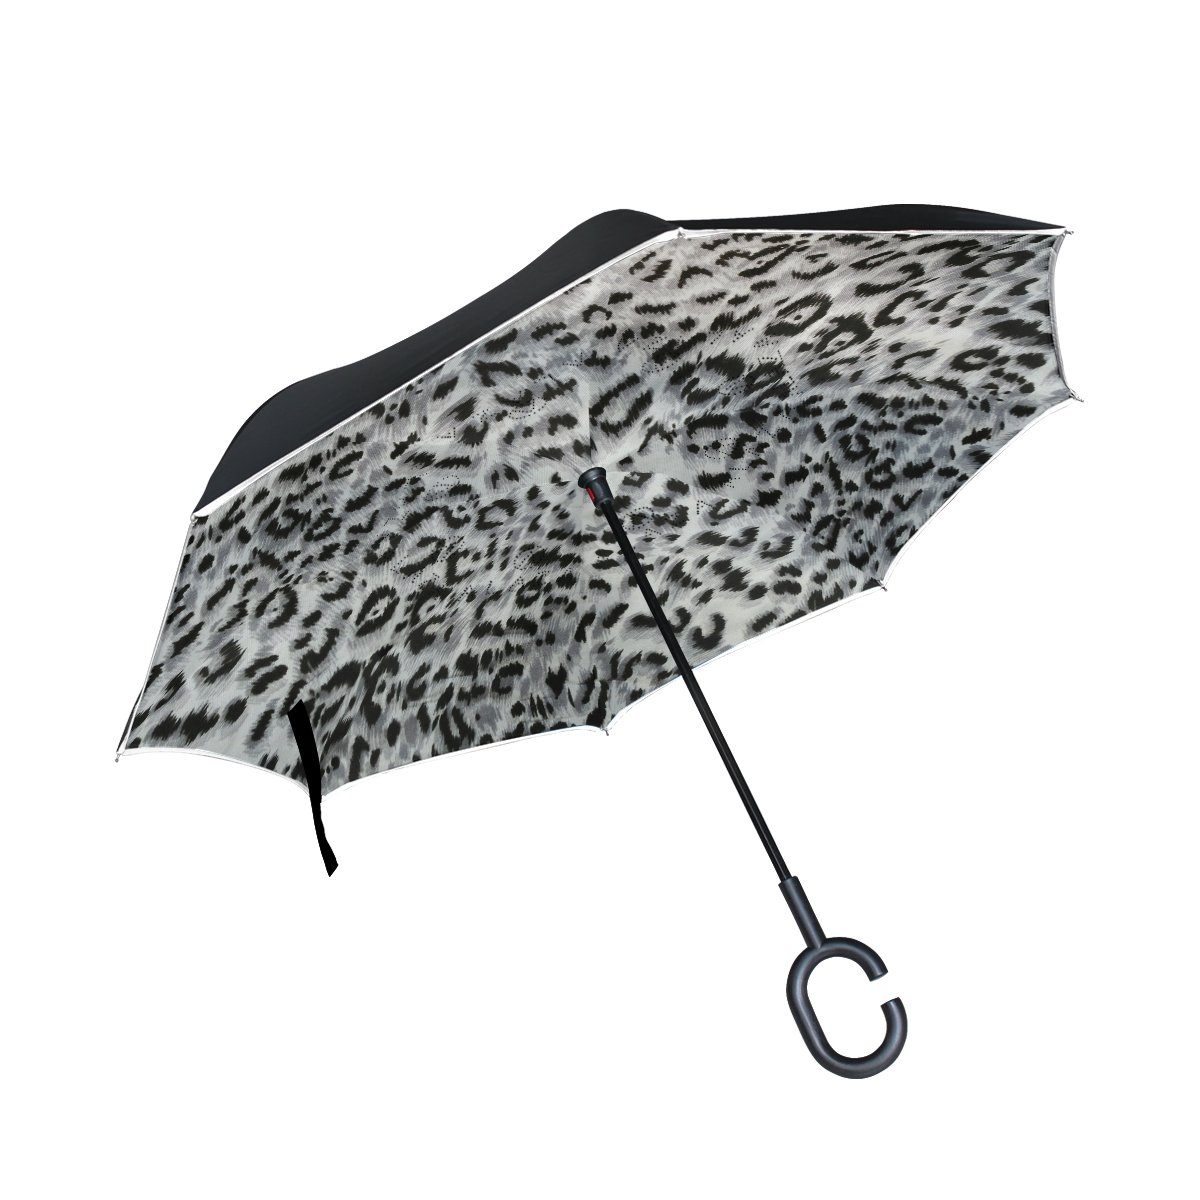 thenahome Reverse Inverted Auto Open Umbrellaコンパクト軽量Straight Umbrellas With Leopard Skinテクスチャfor Car &アウトドア   B07C4R63HX